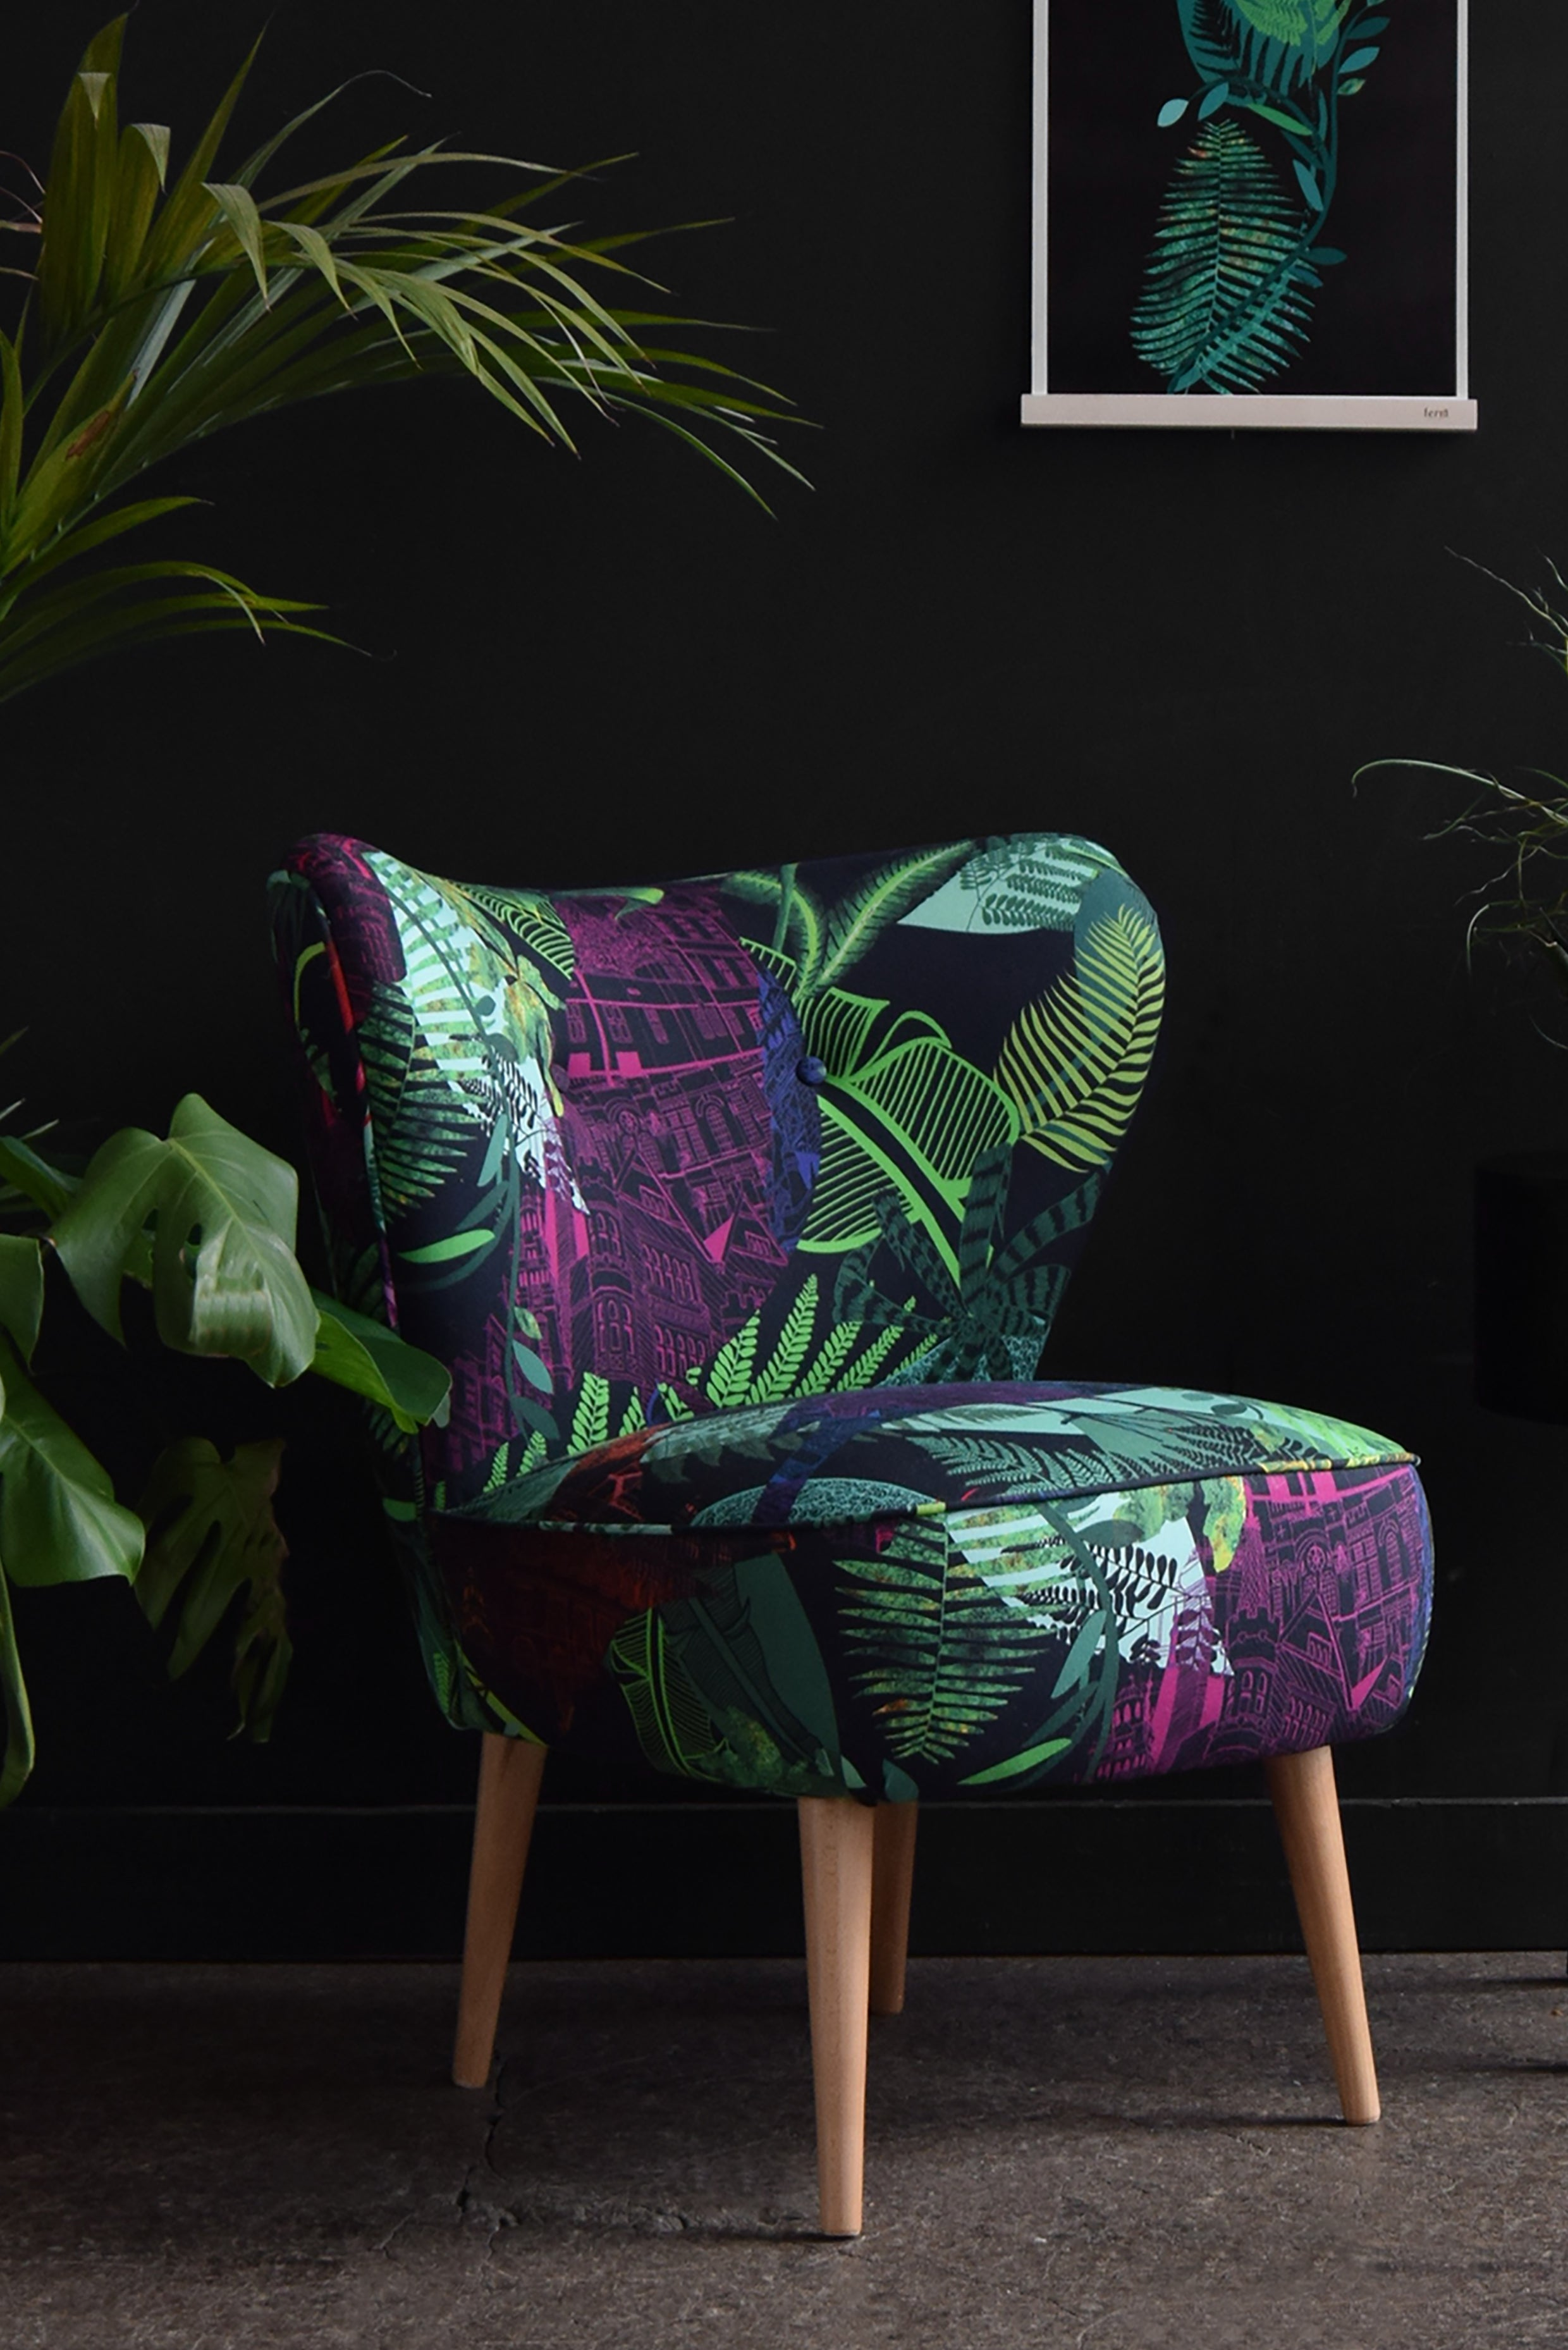 Bespoke cocktail chair for interior designers and home projects